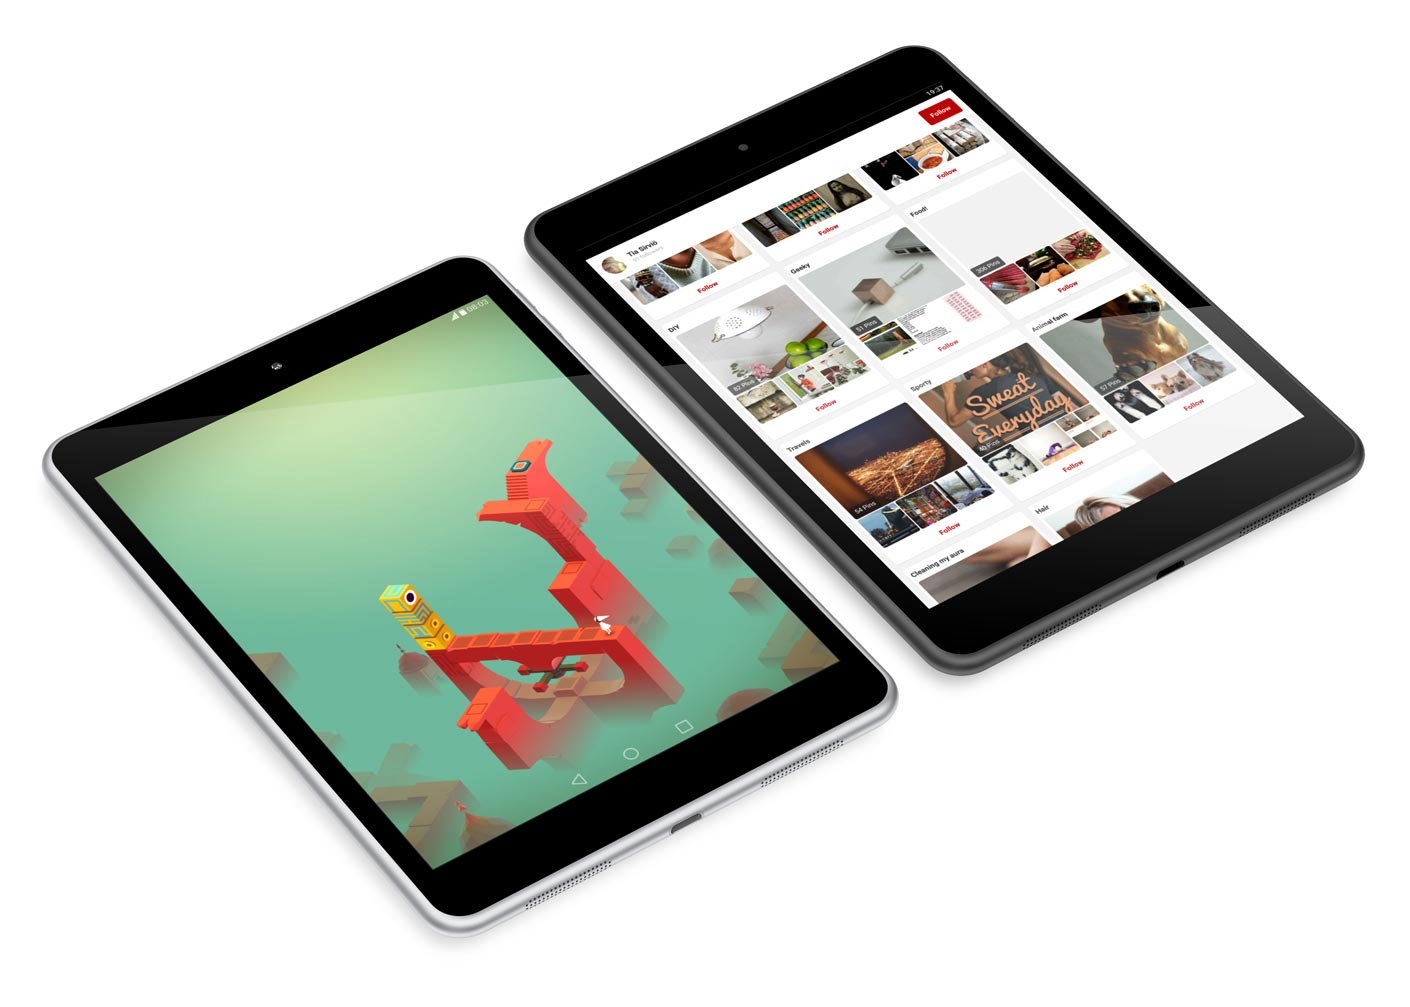 Android tablet that looks like ipad